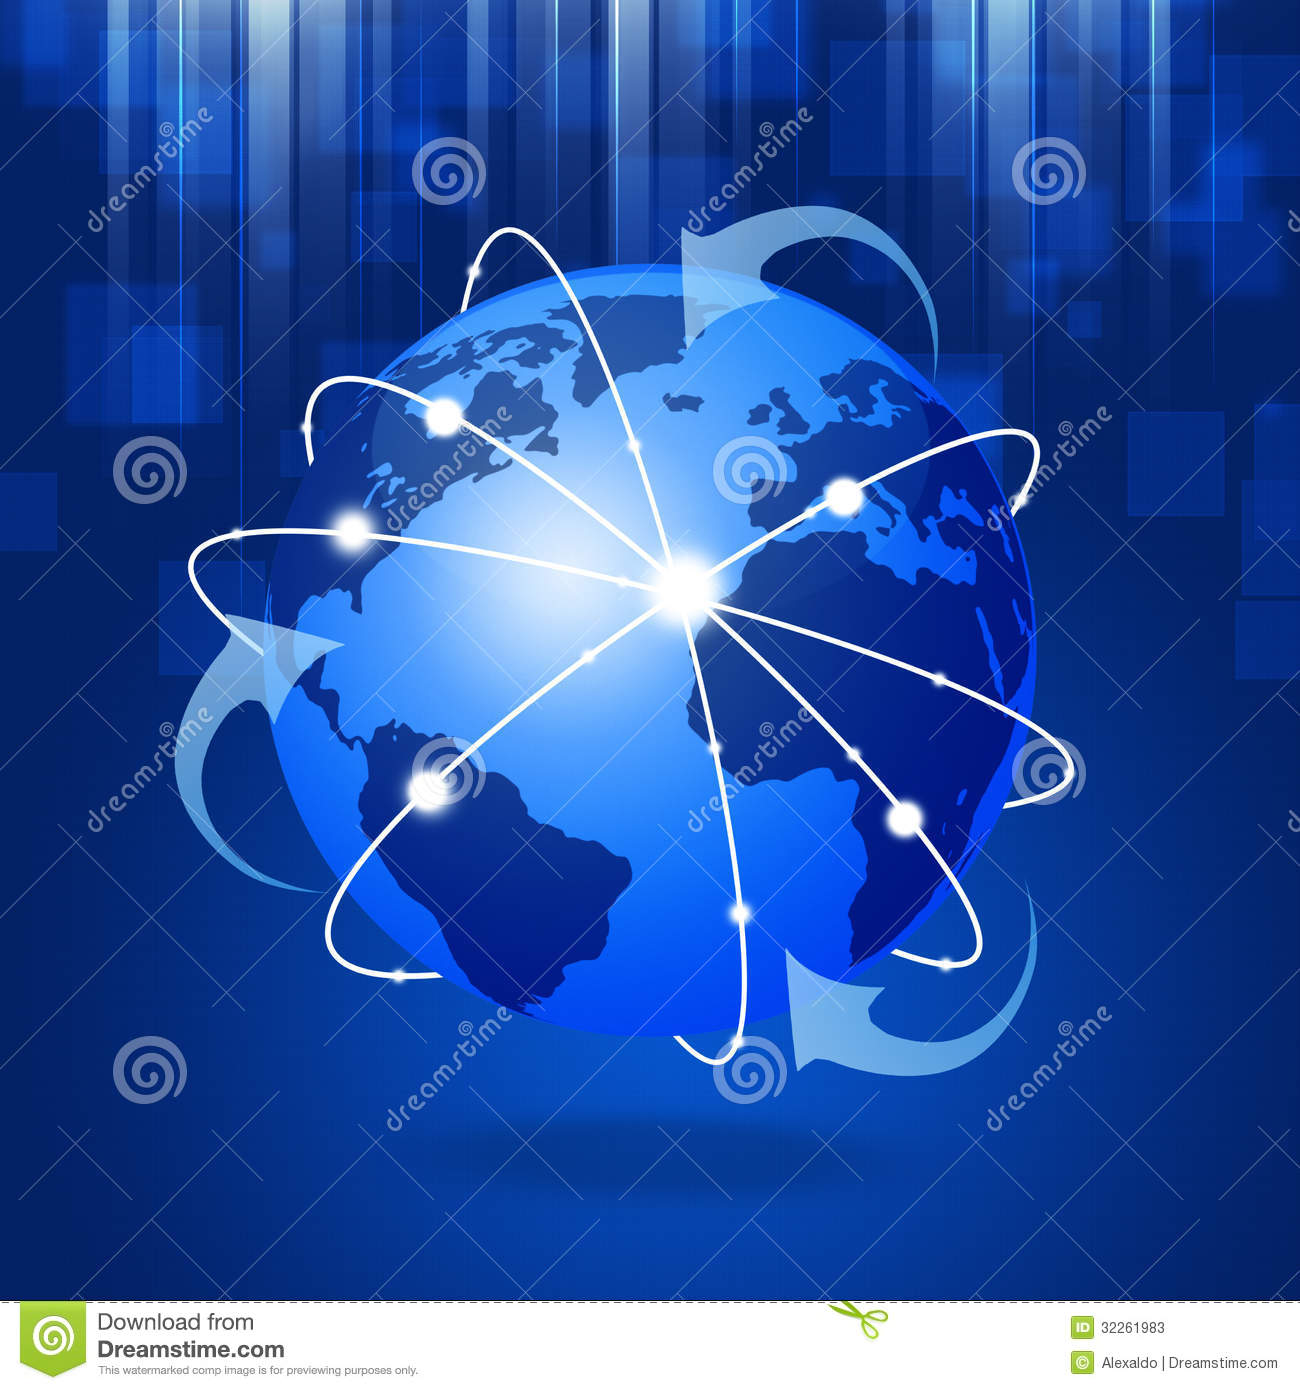 network connection connections technology global globe business background abstract illustration